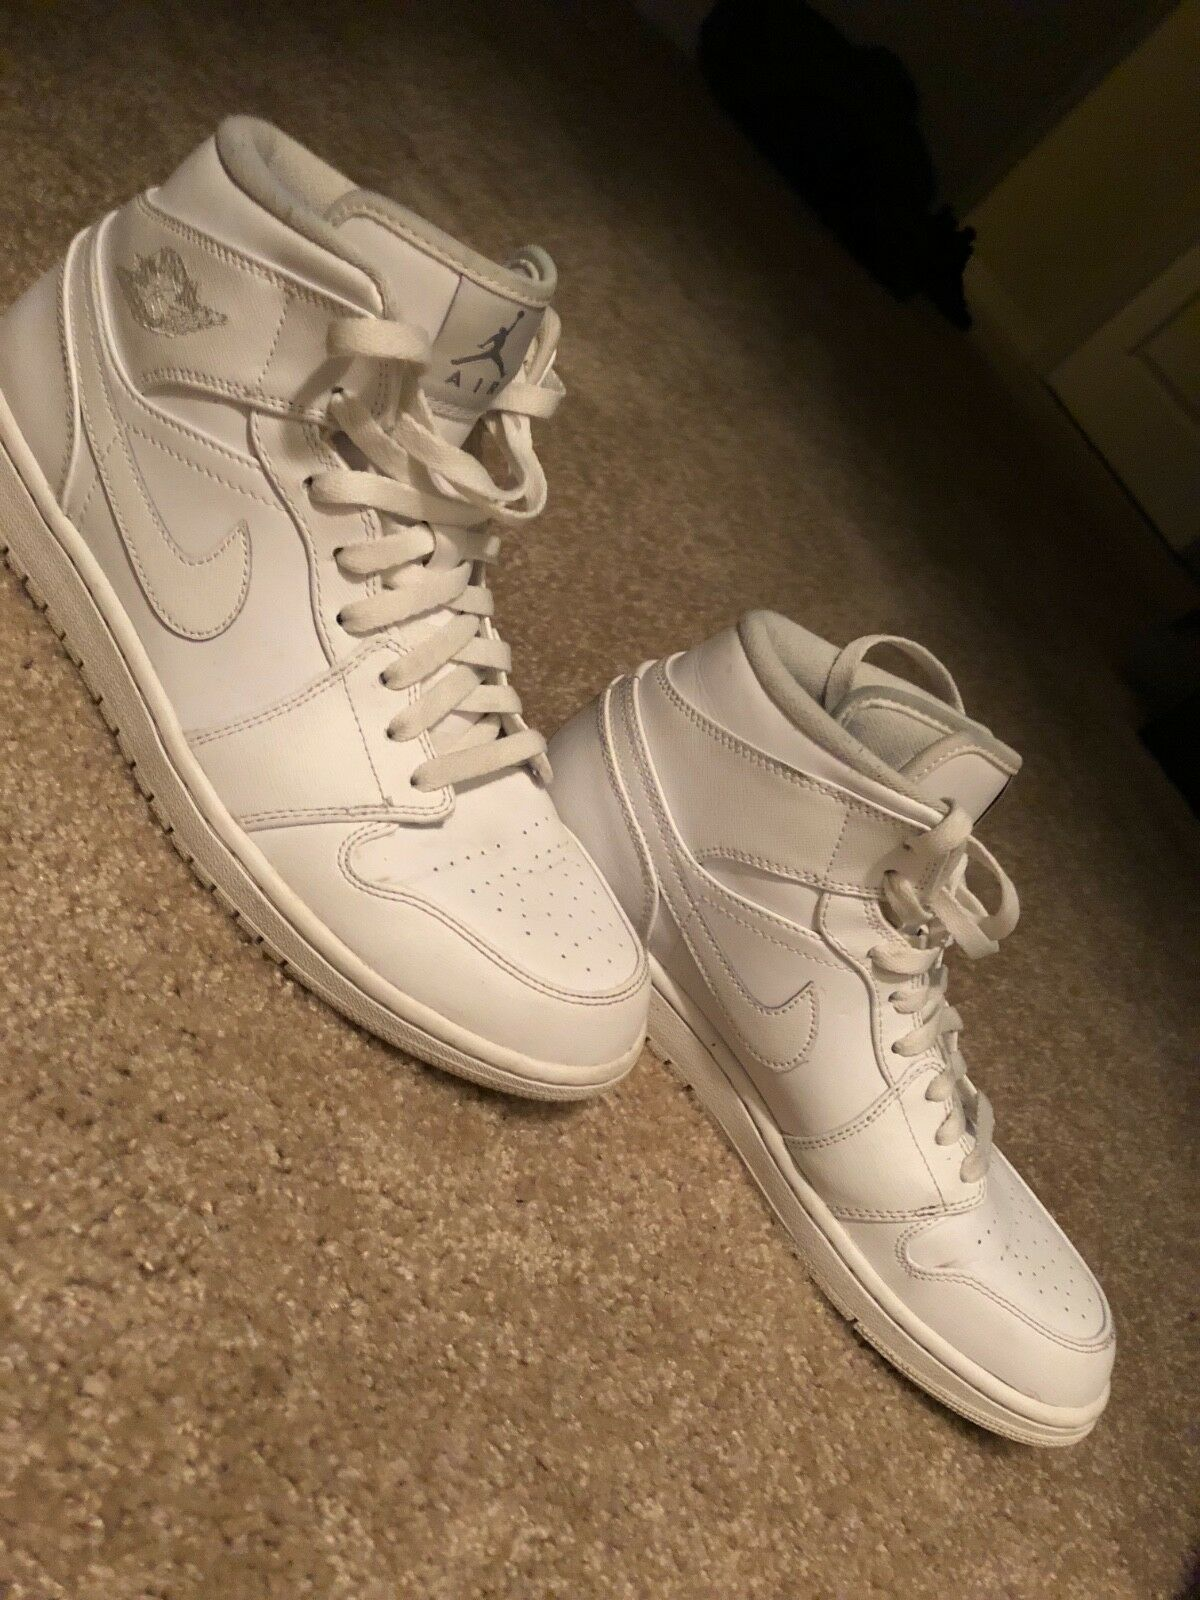 Mens 10.5 Jordan 1s Grey white  09 13.